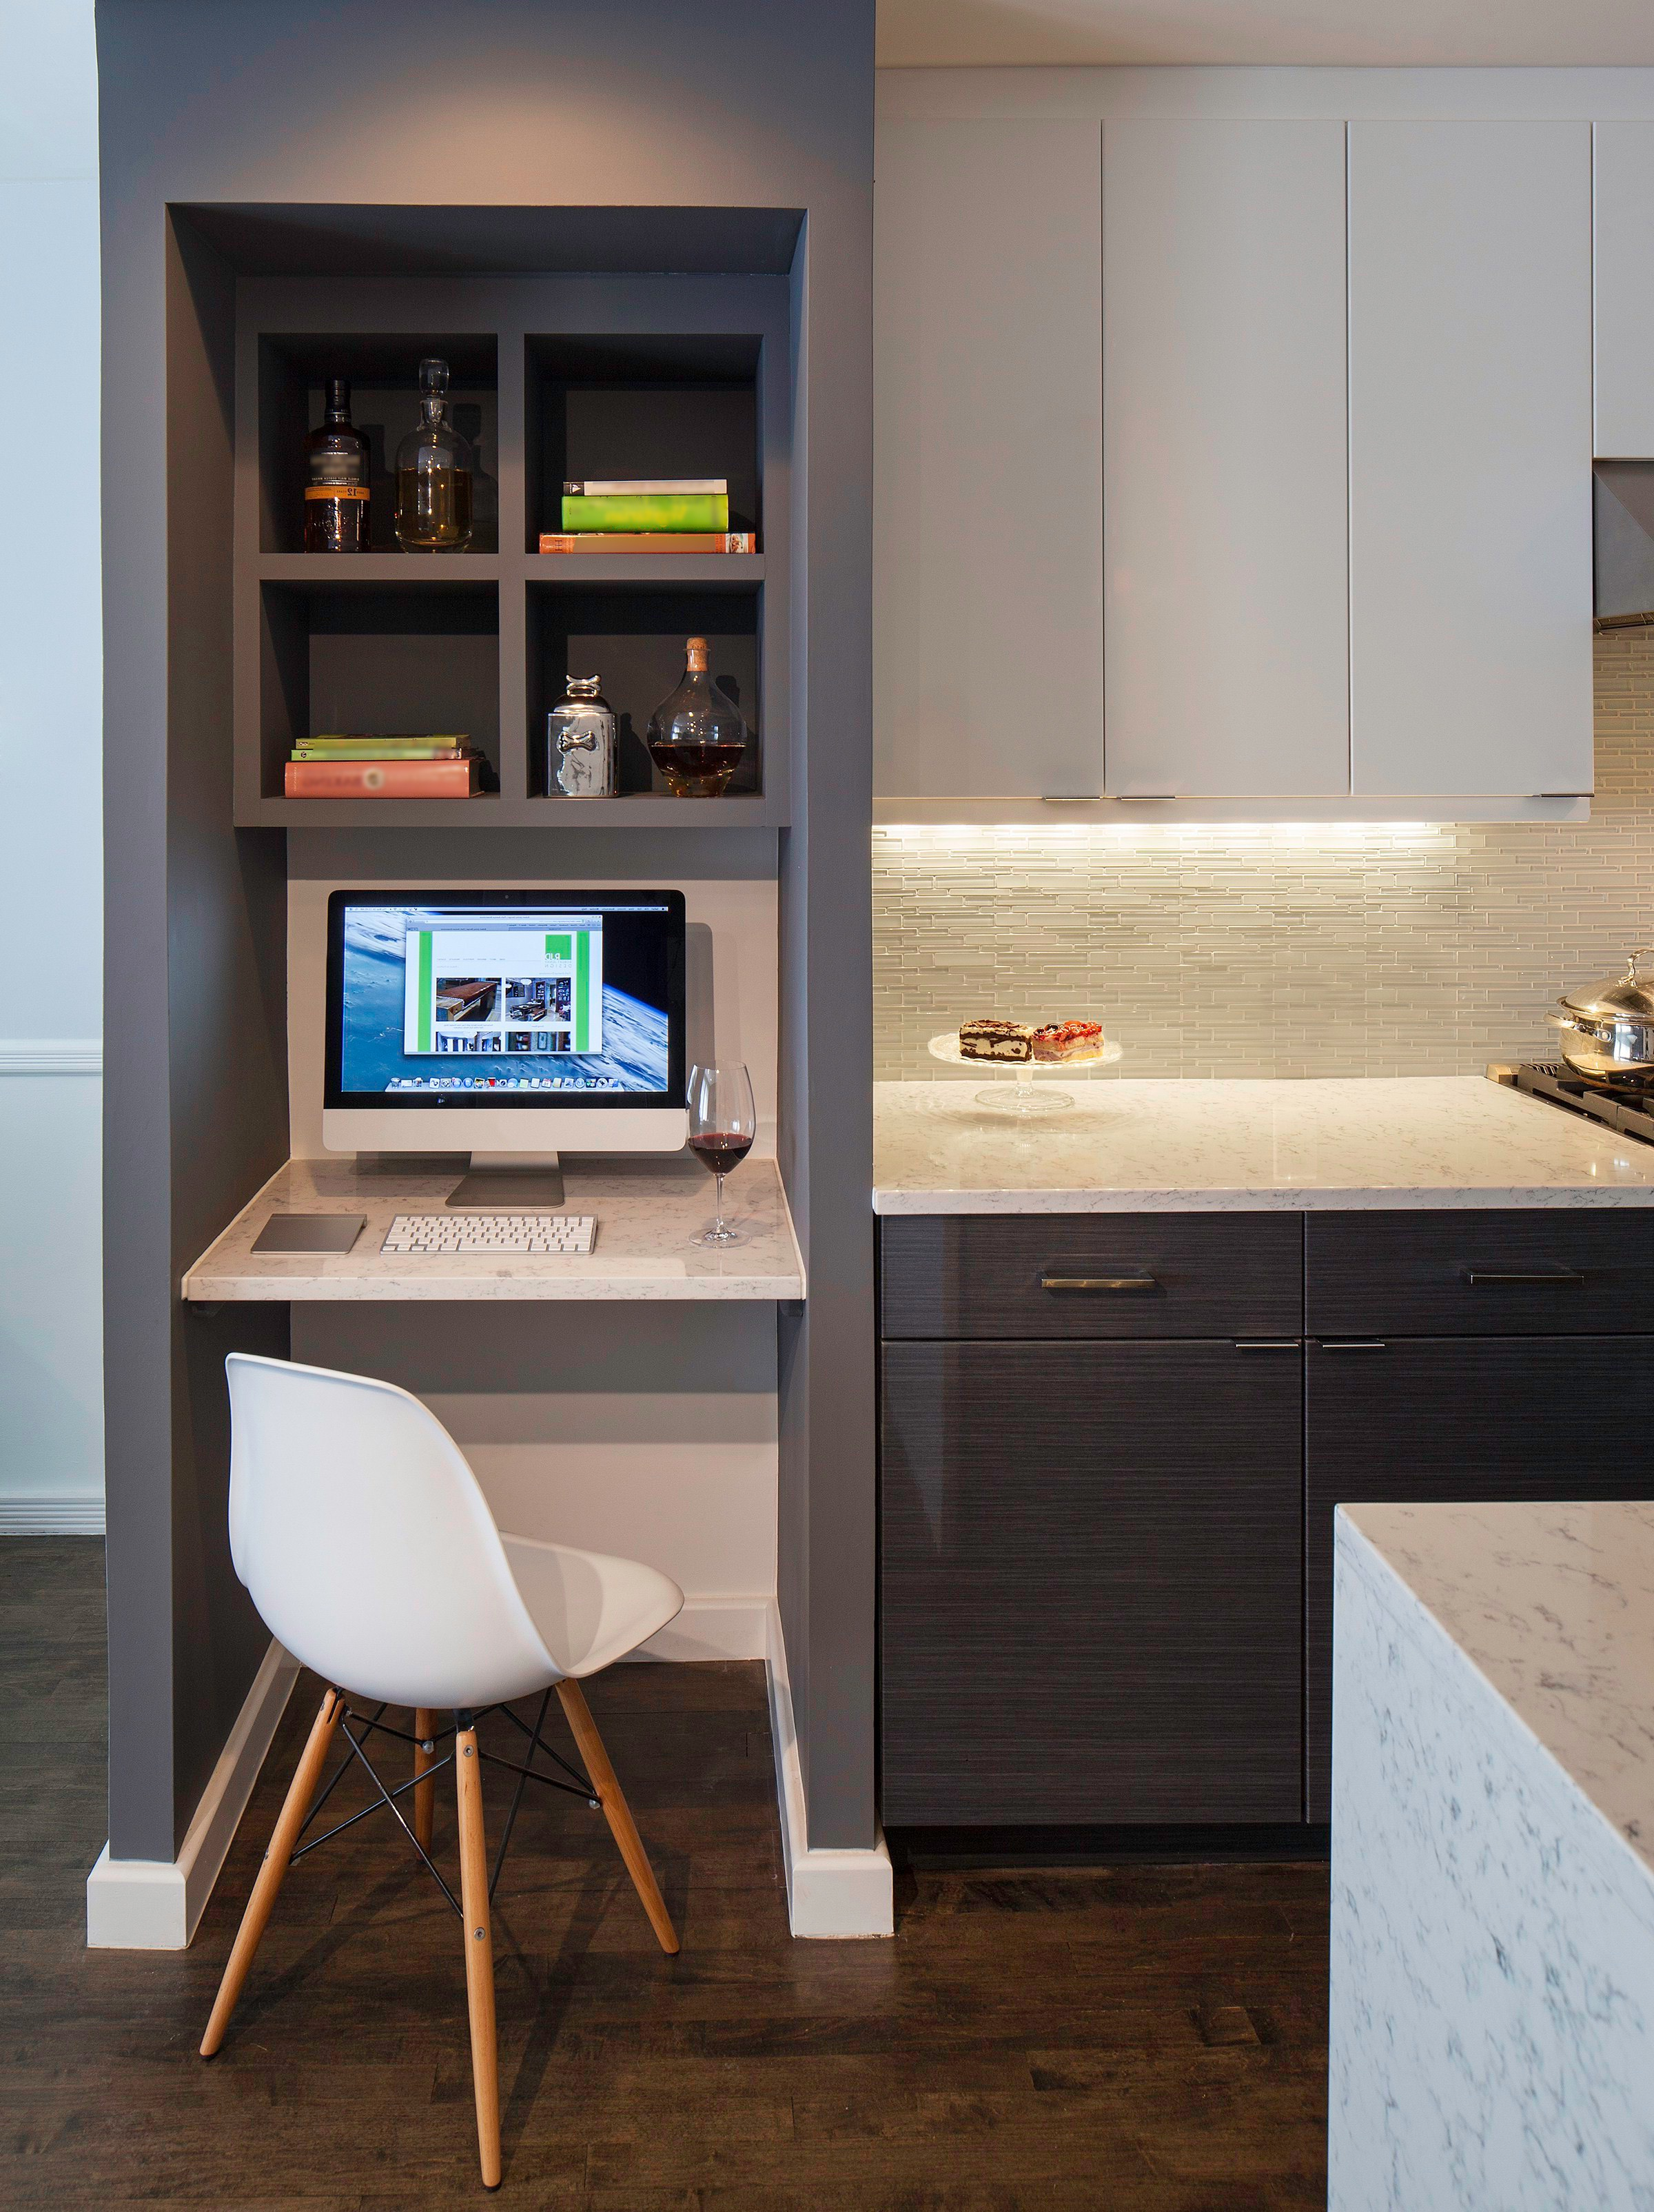 Sleek Modern Kitchen With Small Built In Desk (Image 15 of 17)